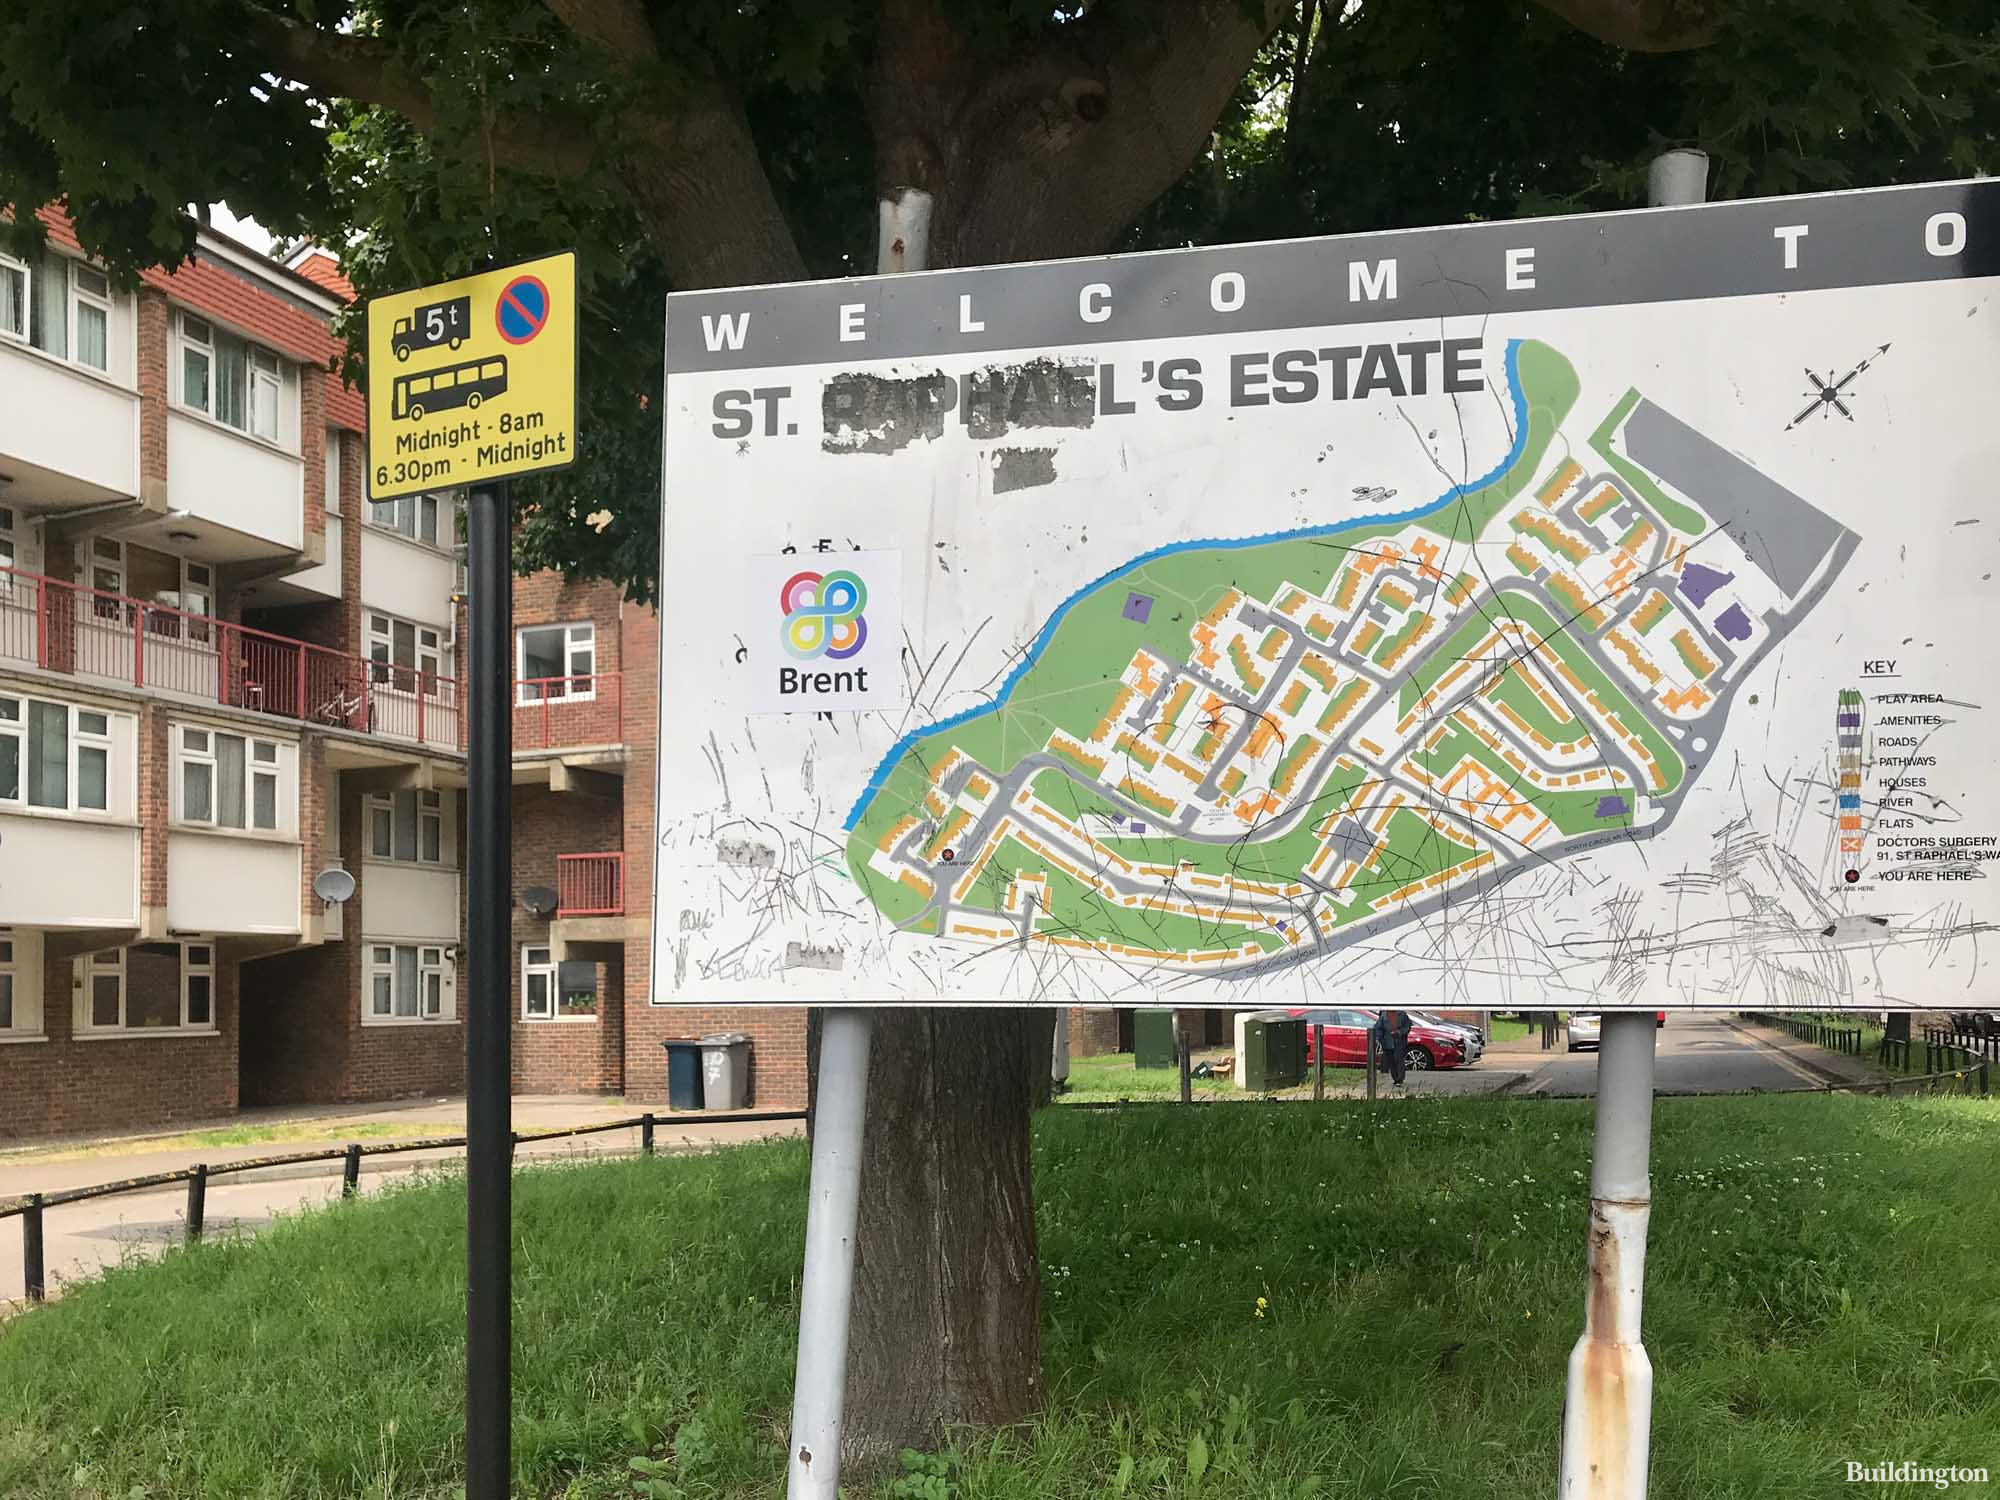 Welcome to St Raphael's Estate - site plan of the council estate in Brent.